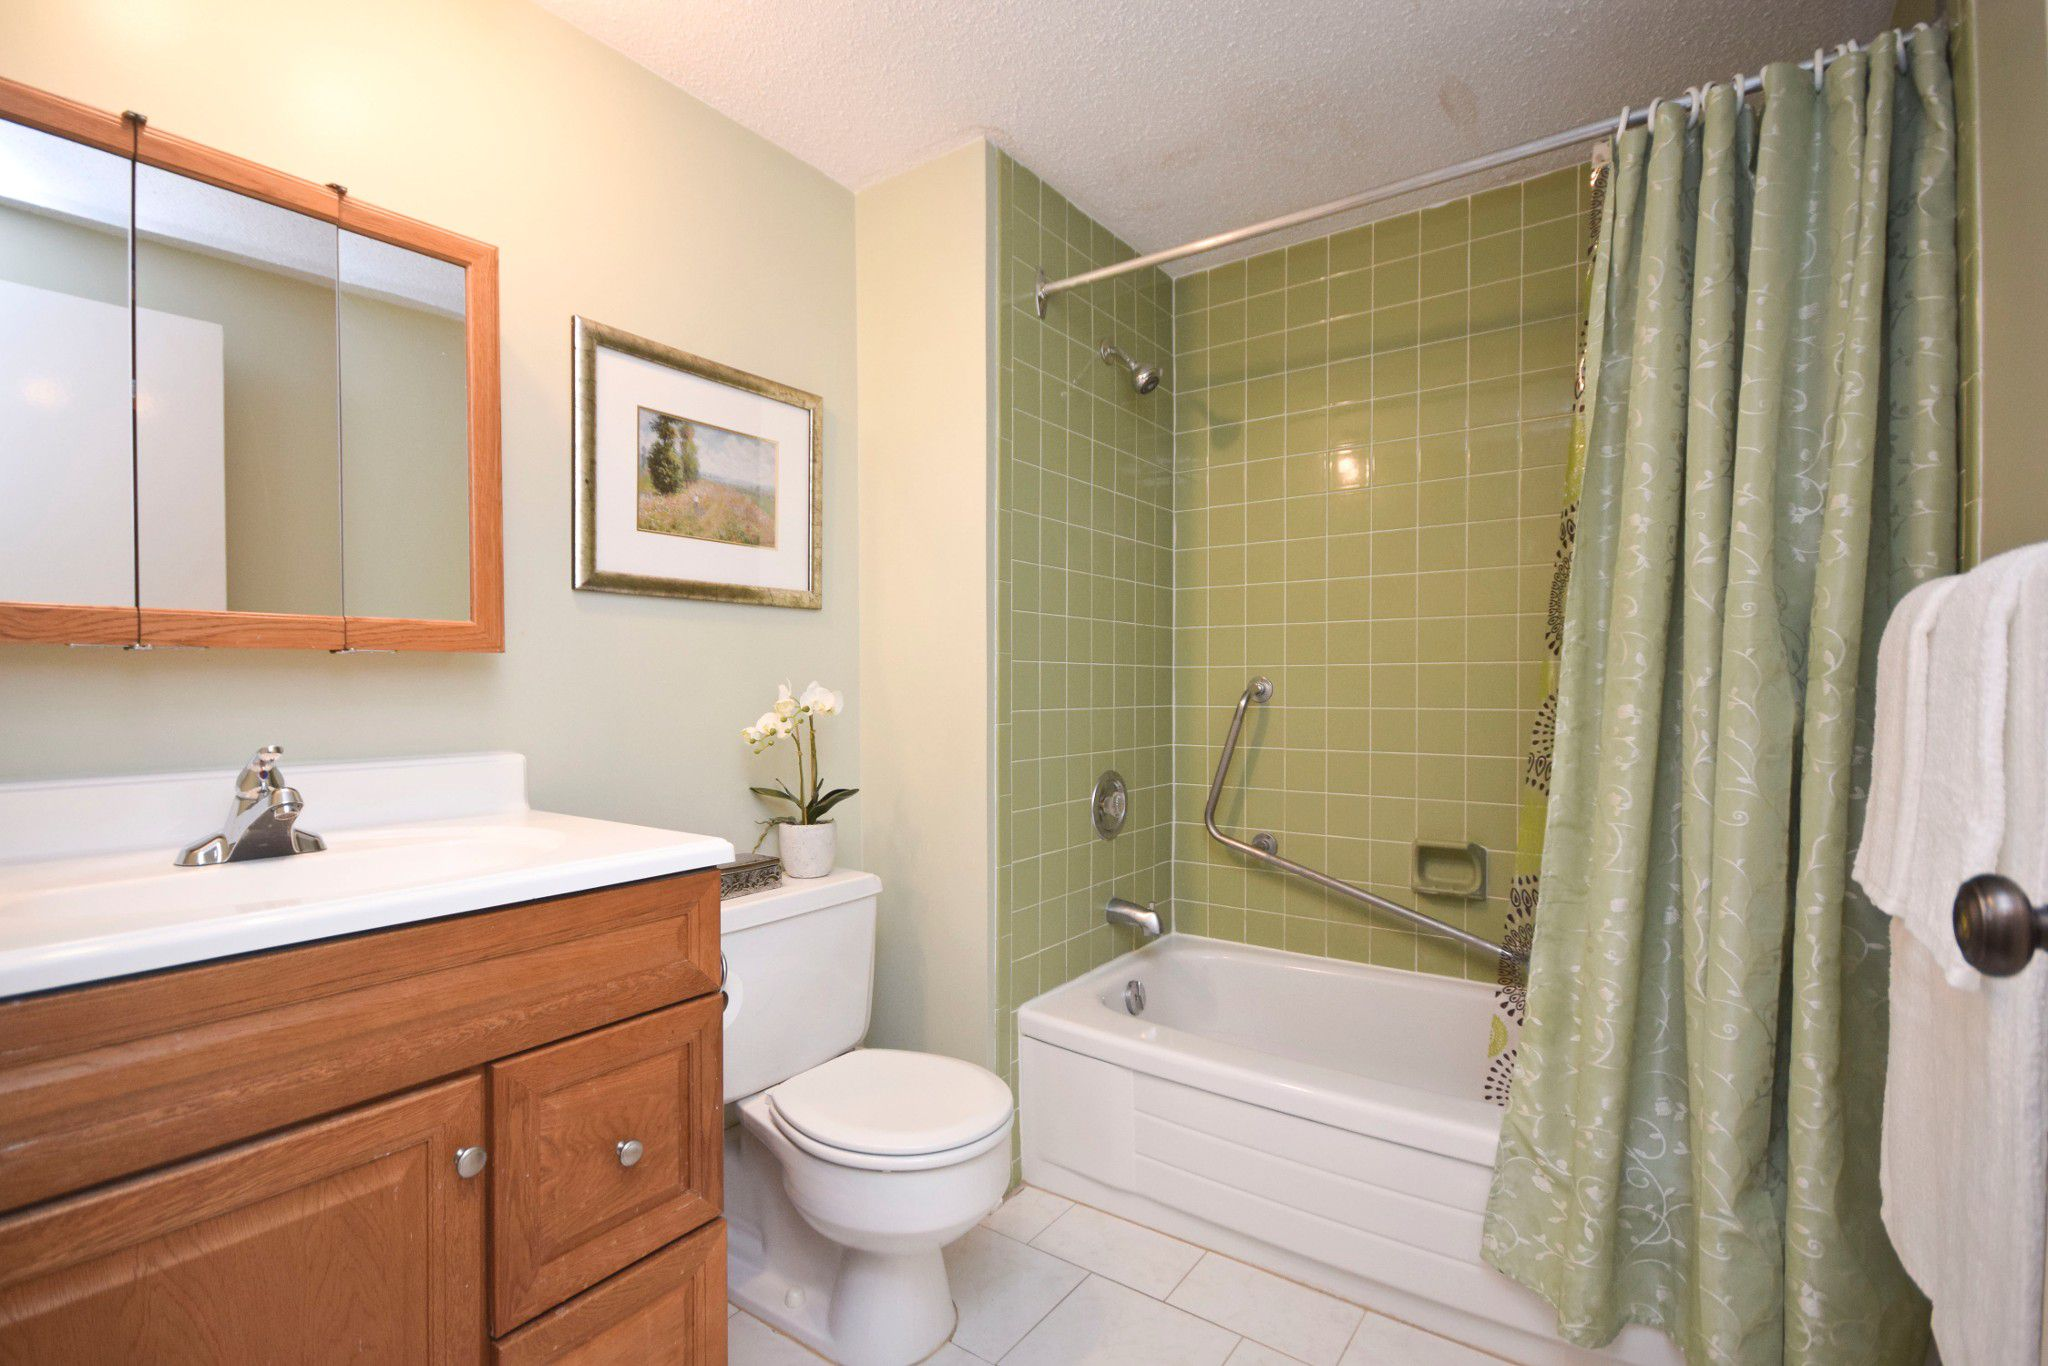 Photo 33: Photos: 515 1465 BASELINE Road in Ottawa: Copeland Park House for sale : MLS®# 1133550